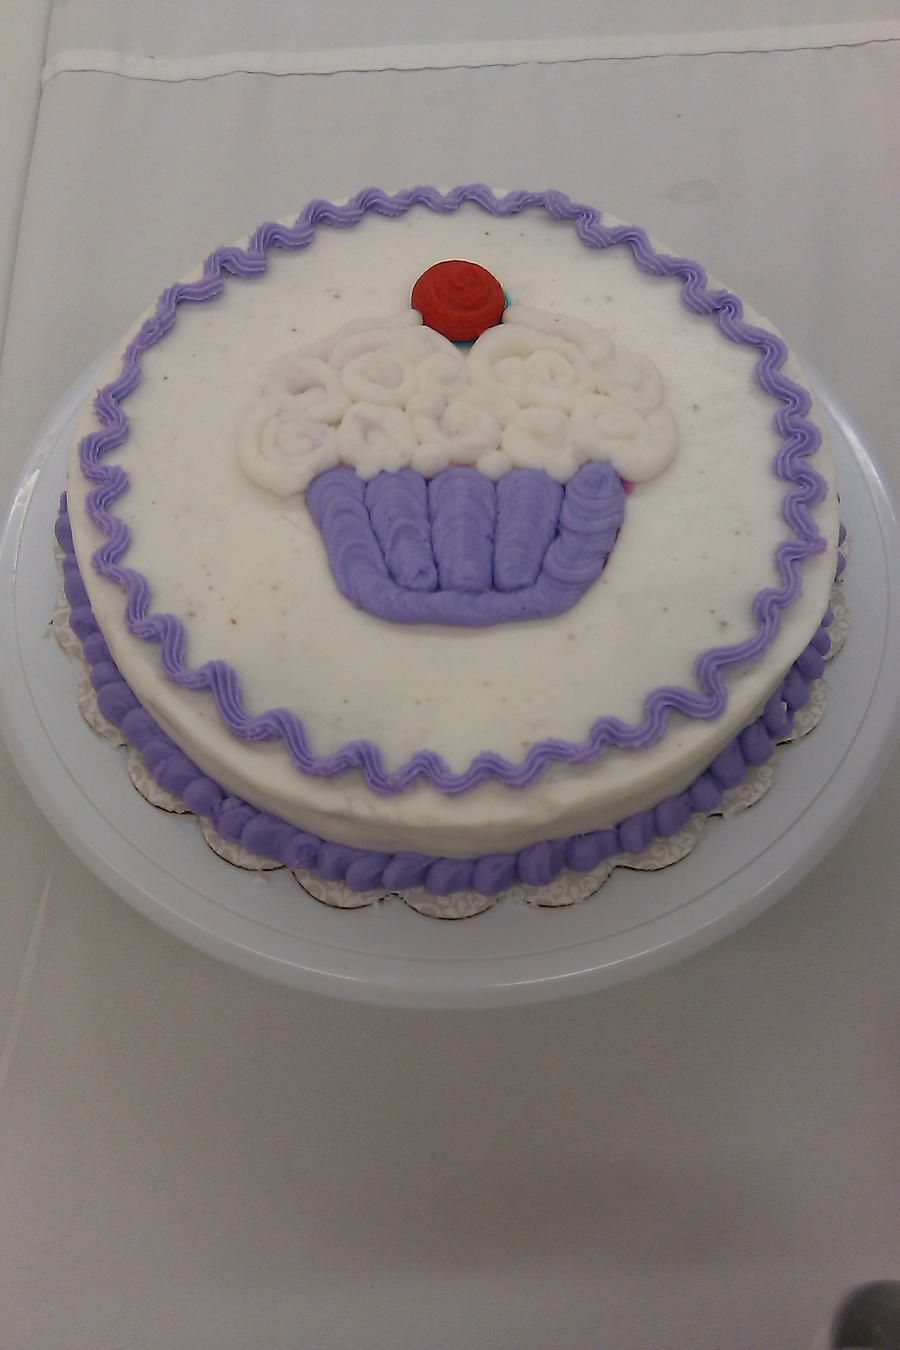 Cake Decorating Experience Day : Day 1:Cake Decorating class by VaneChu on DeviantArt